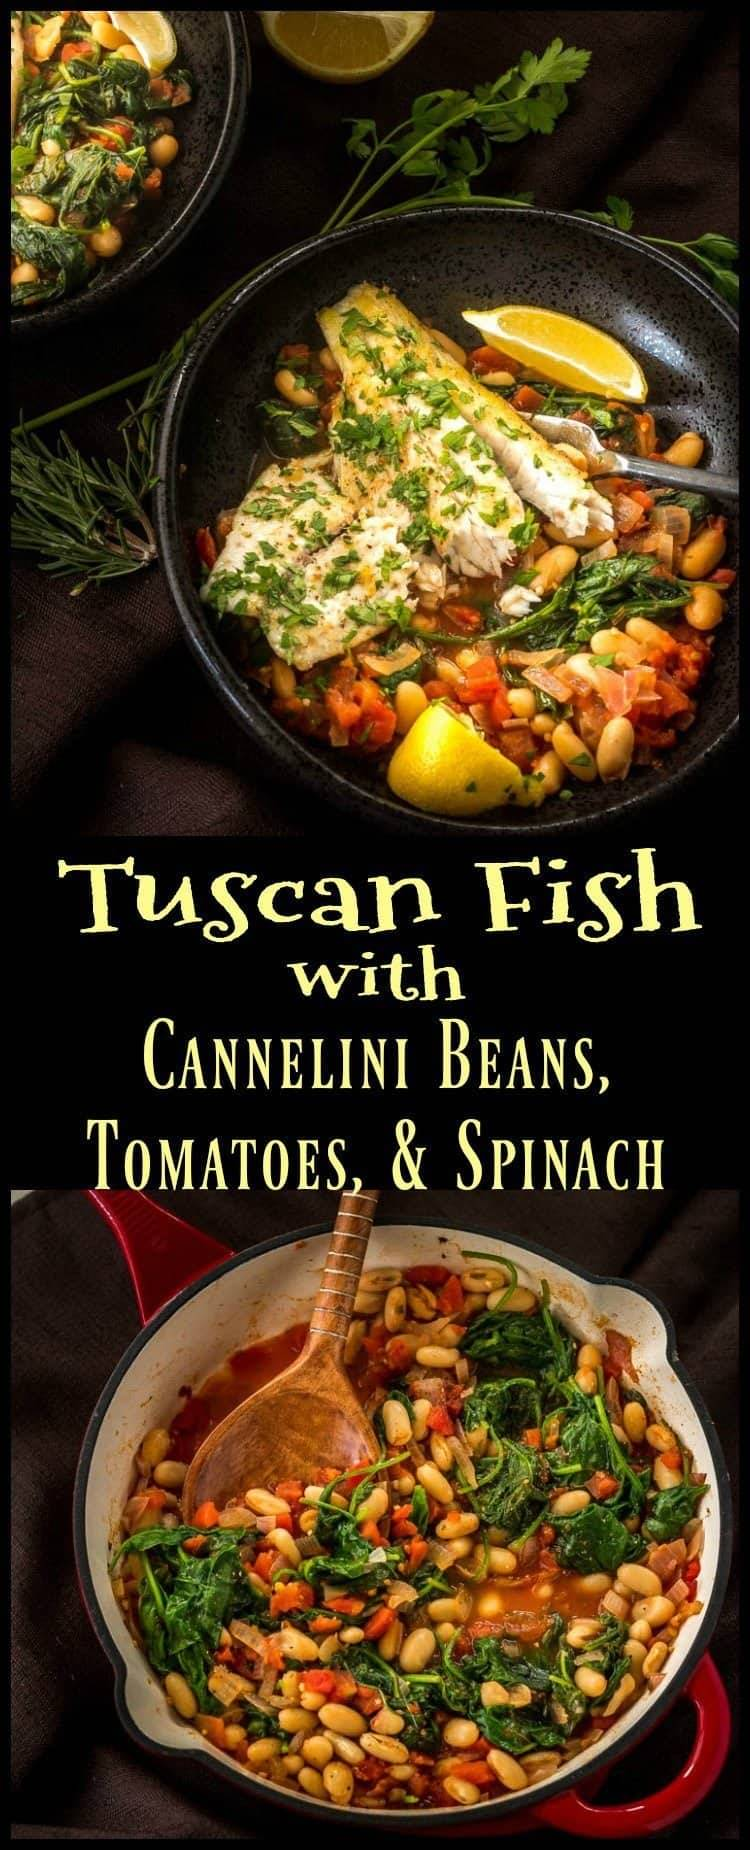 Tuscan Fish With Cannelini Beans, Tomatoes, & Spinach Pin - A quick, healthy, and delicious way to prepare inexpensive fish fillets! Tuscan Fish with Cannelini Beans, Tomatoes, and Spinach packs lots of bold flavor in a one-dish meal... #tuscanfish #easyfishrecipes #weeknightmeals #glutenfree